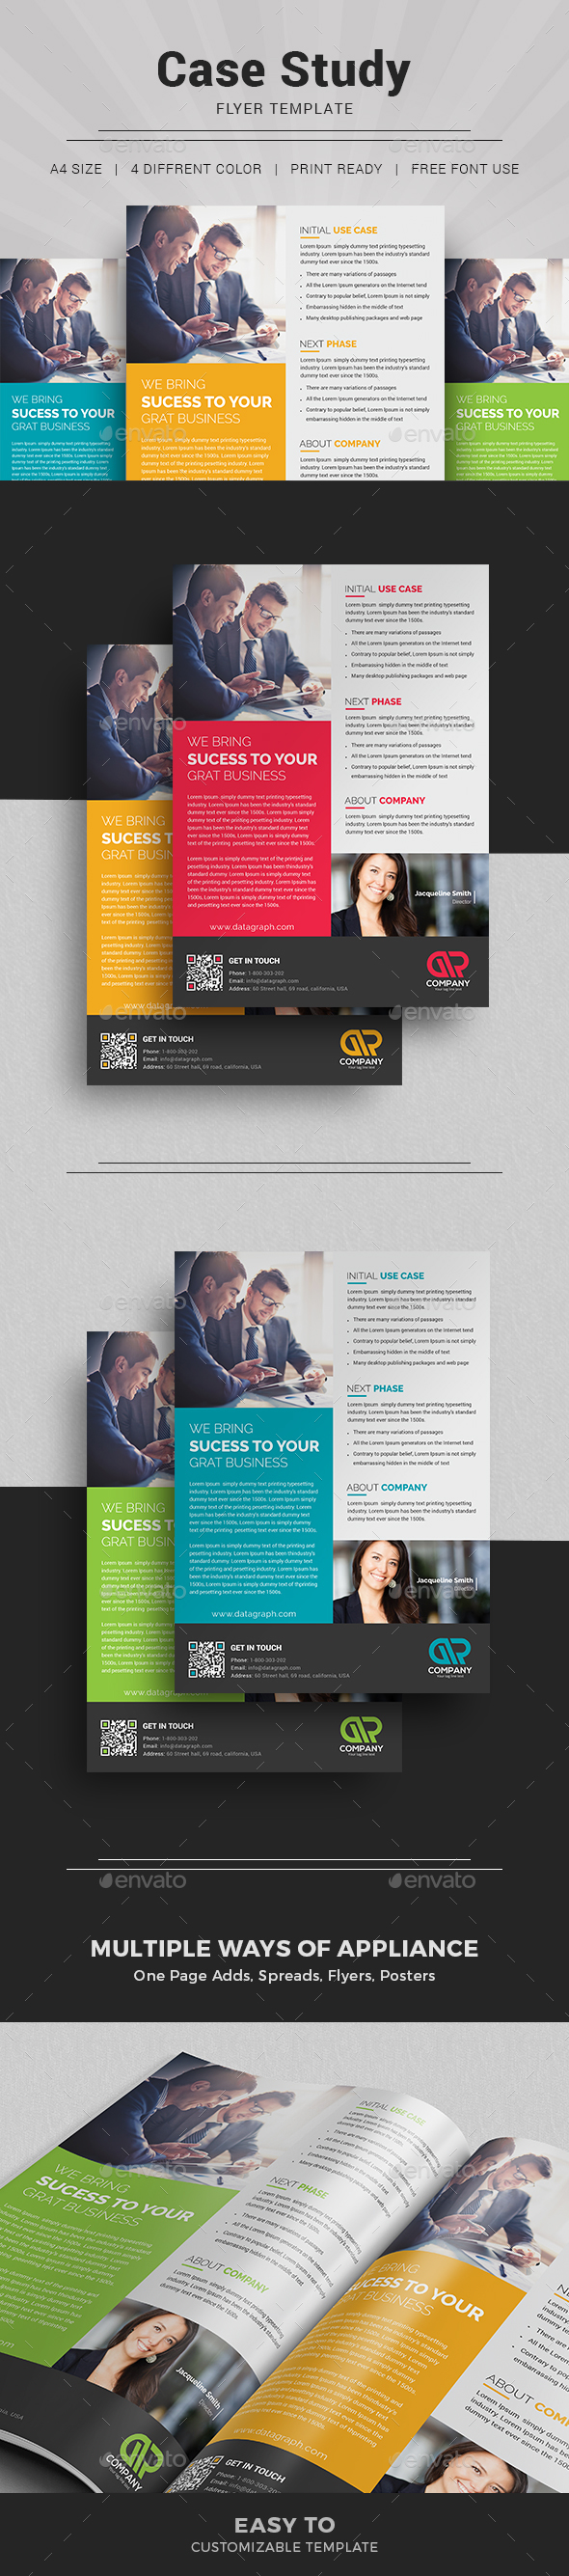 research study flyer template - case study template i flyer by themedevisers graphicriver